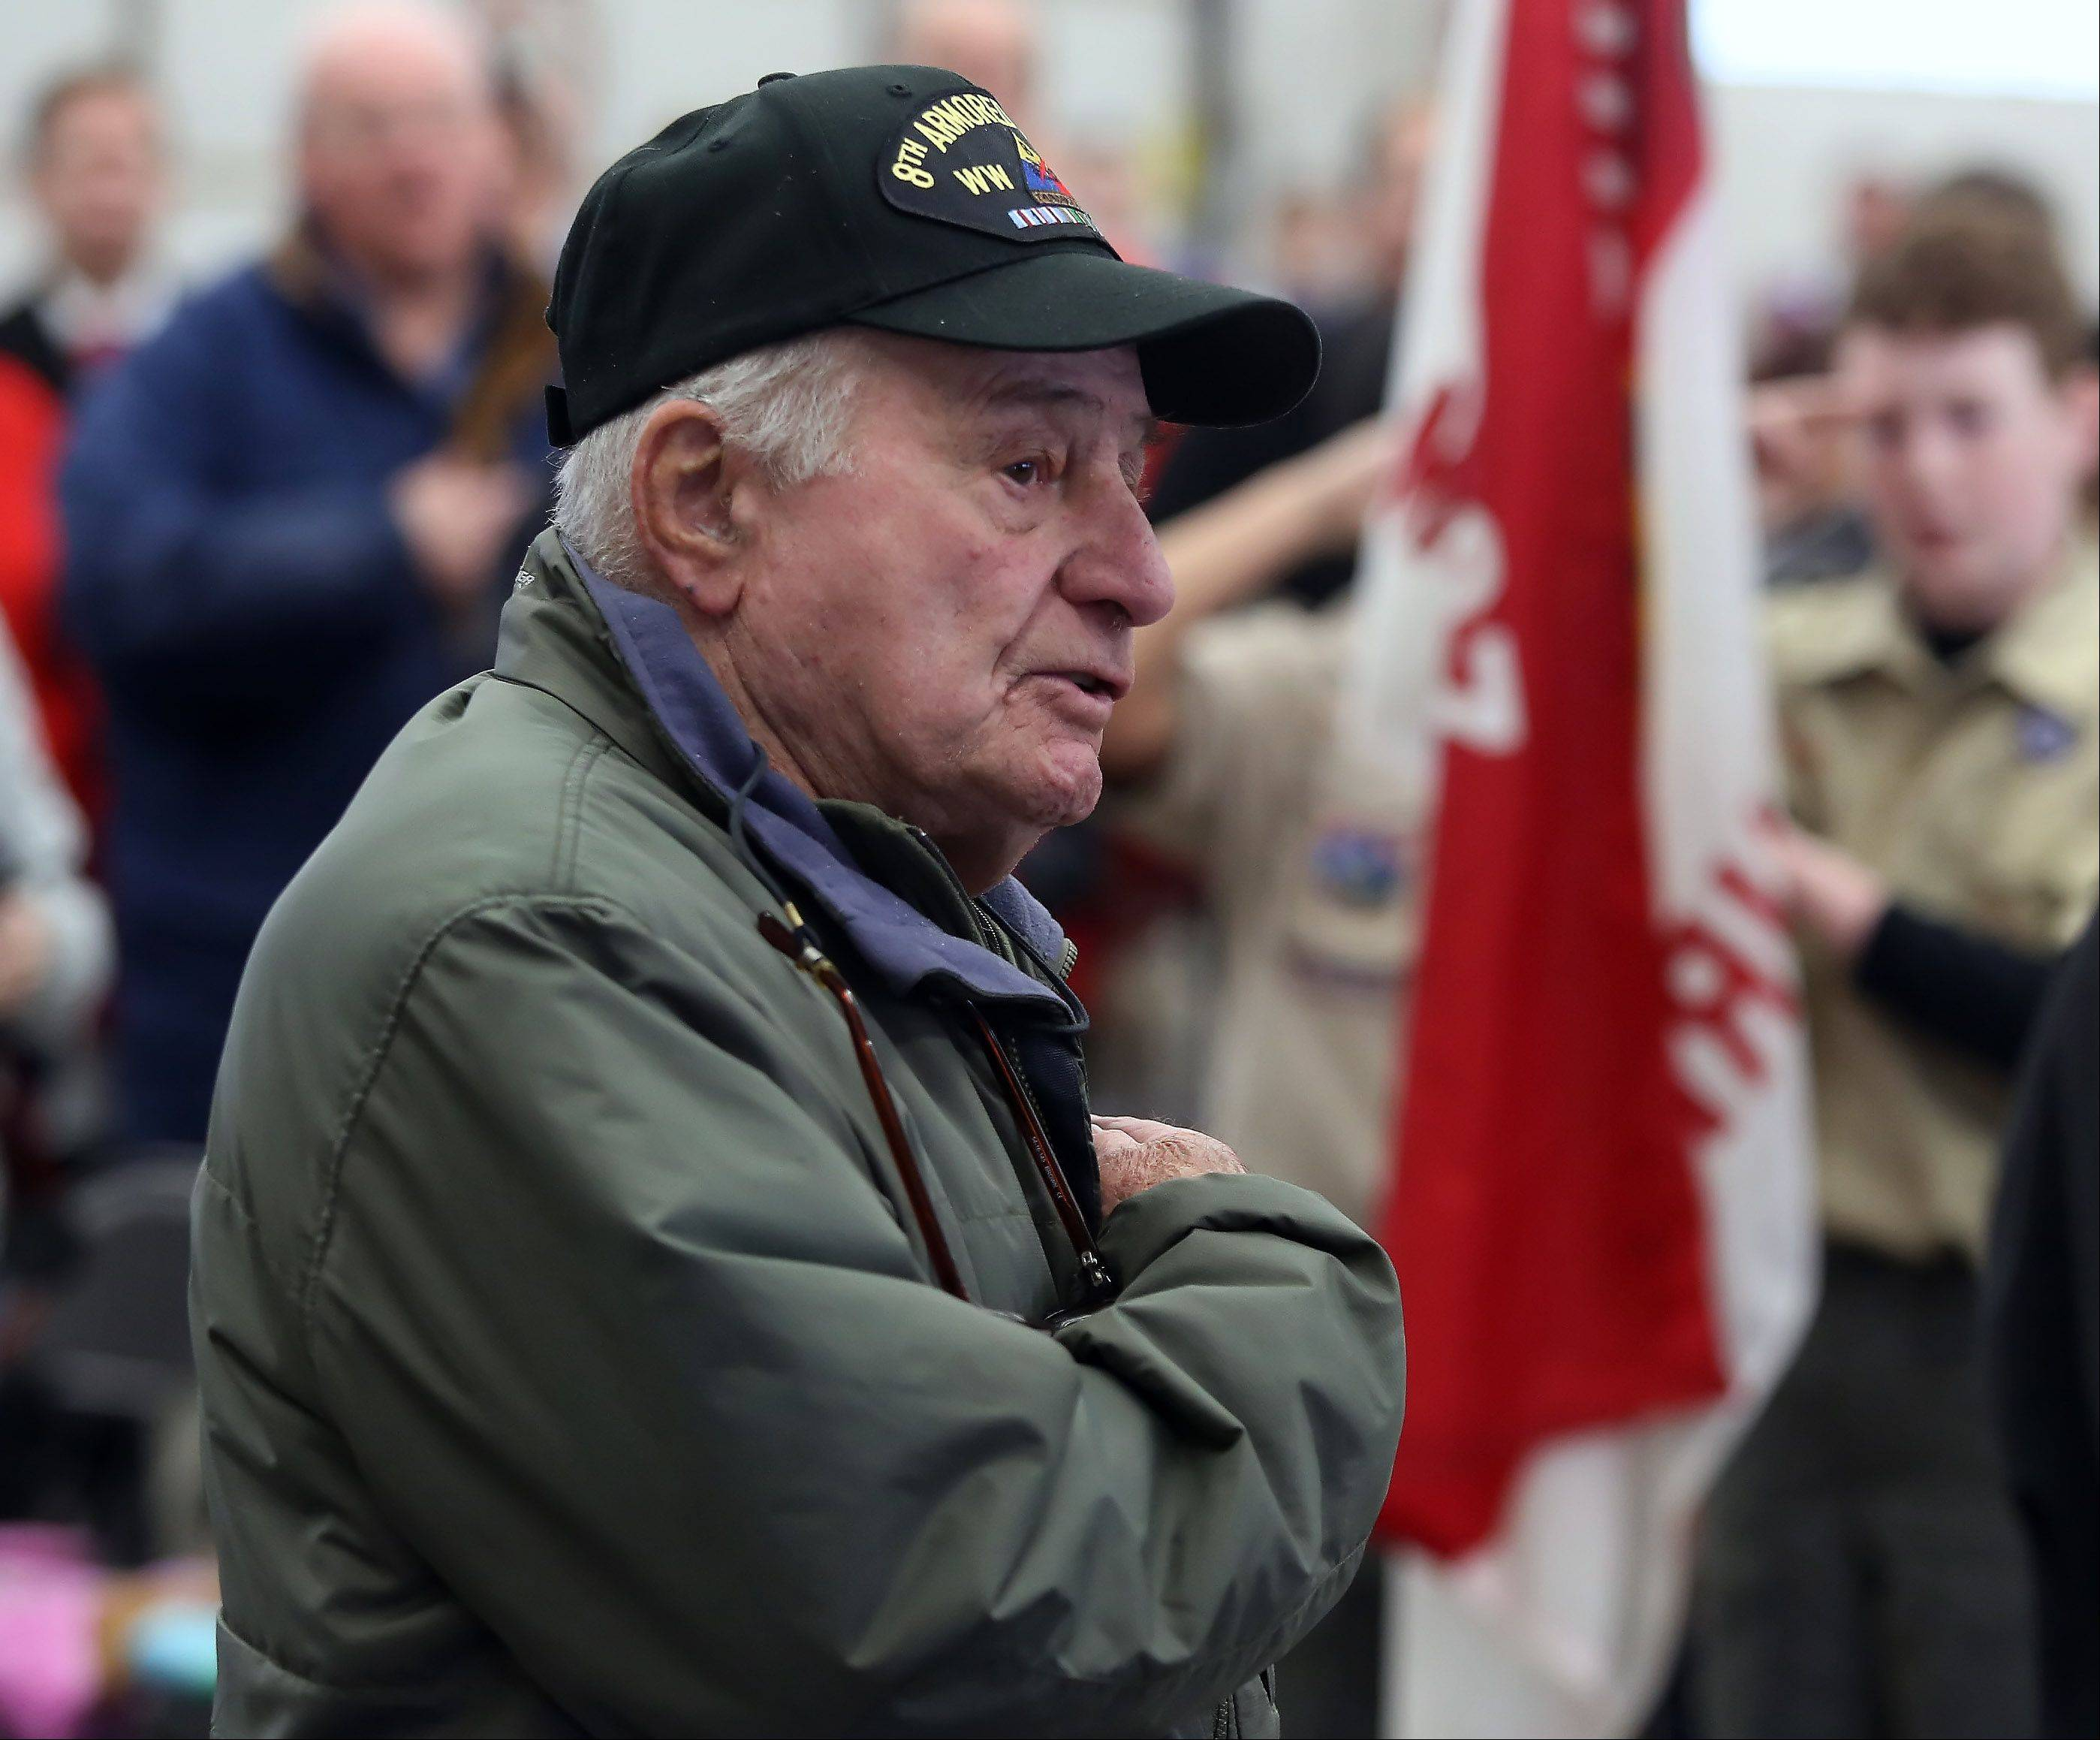 World War II veteran Morrie Dorfman of Lake Villa recites the Pledge of Allegiance during the Veterans Day ceremony Monday at Lindenhurst Municipal Center and Veteran's Memorial. The ceremony honored veteran's and their families and featured several speakers, including Capt. R. Scott Laedlein, Commanding Officer of Navy Operational Support Command for Chicago.